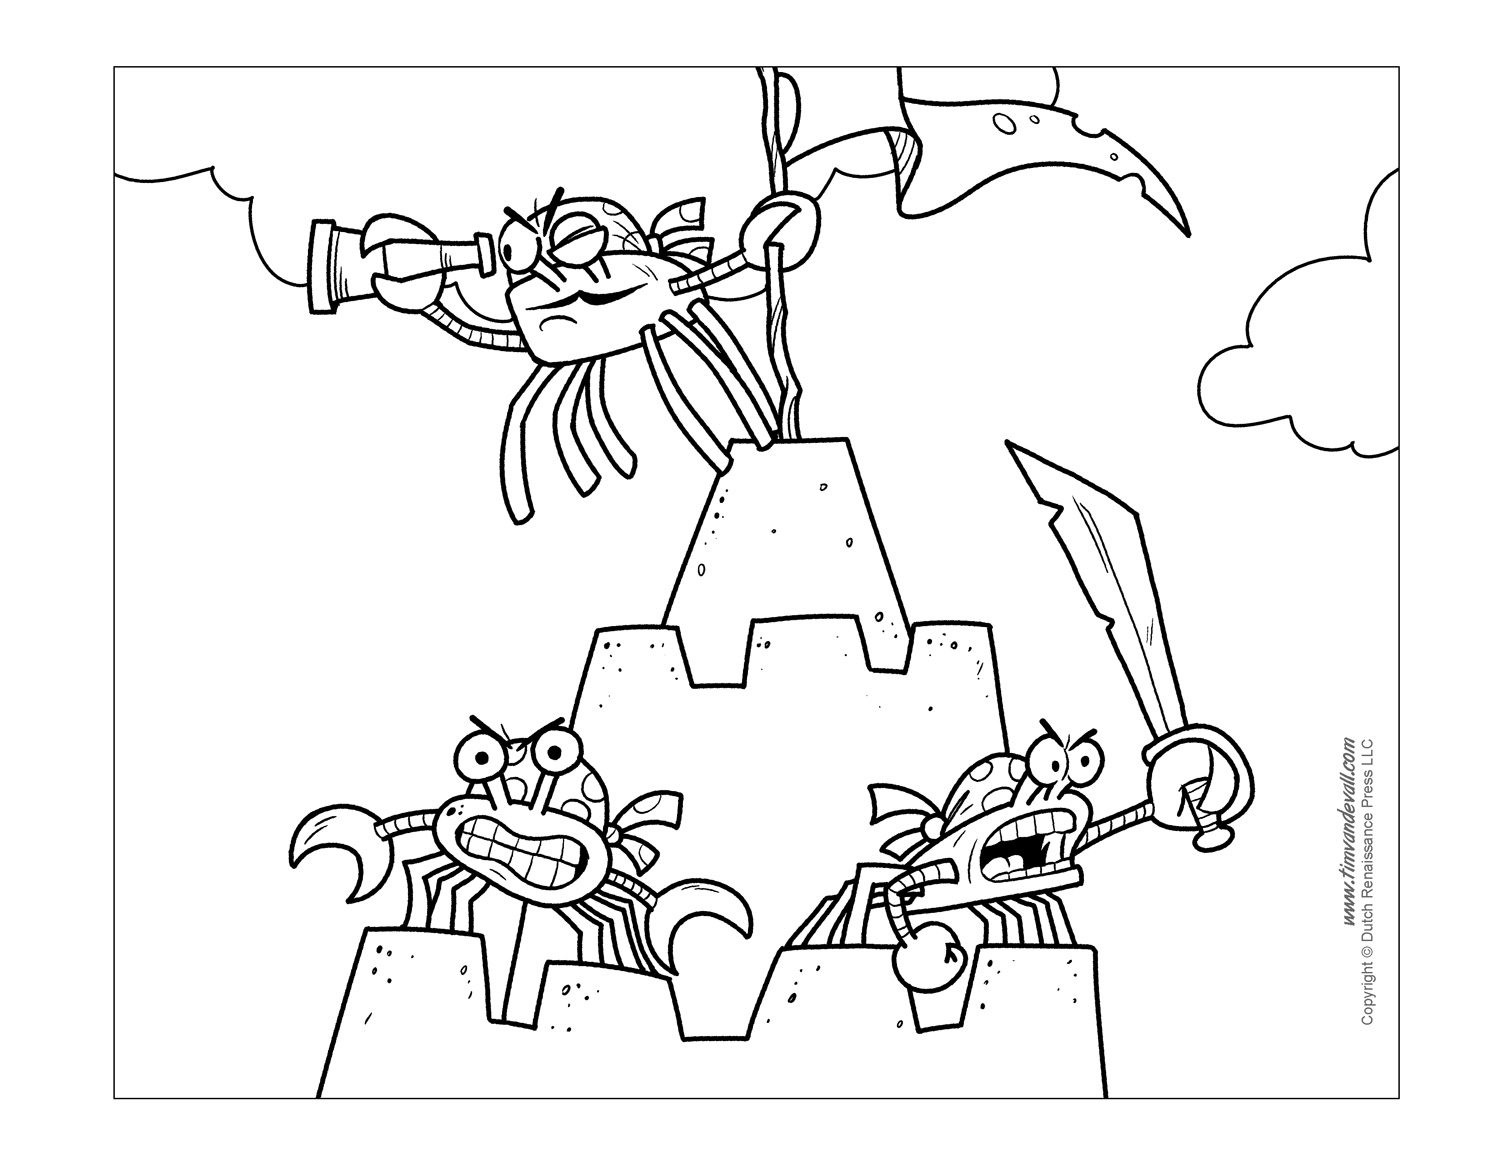 colouring pages to print free celtic coloring pages best coloring pages for kids print pages free to colouring